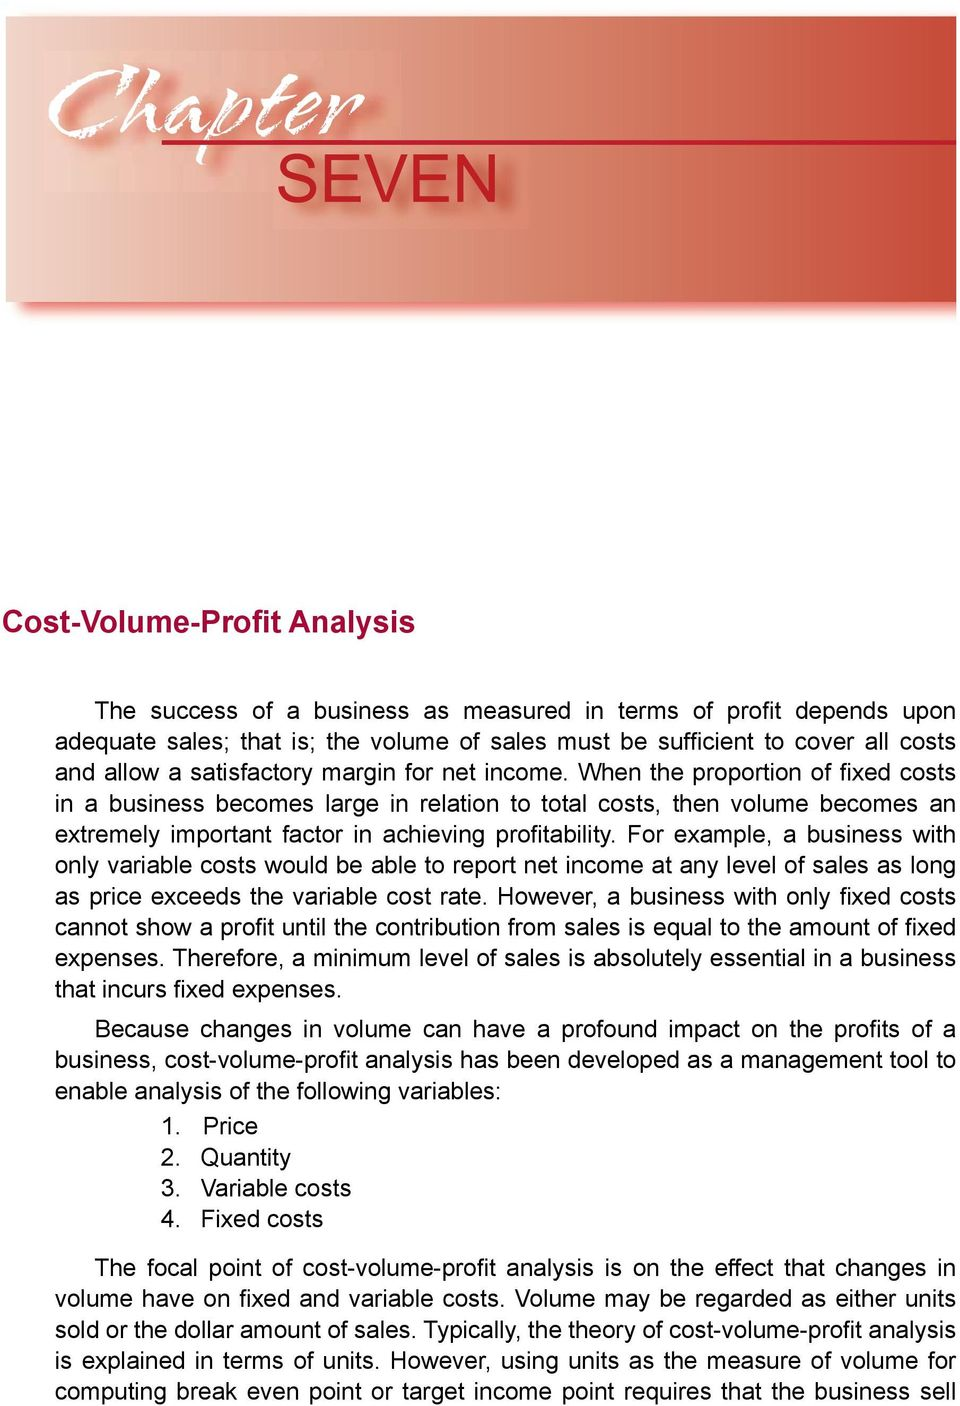 When the proportion of fixed costs in a business becomes large in relation to total costs, then volume becomes an extremely important factor in achieving profitability.